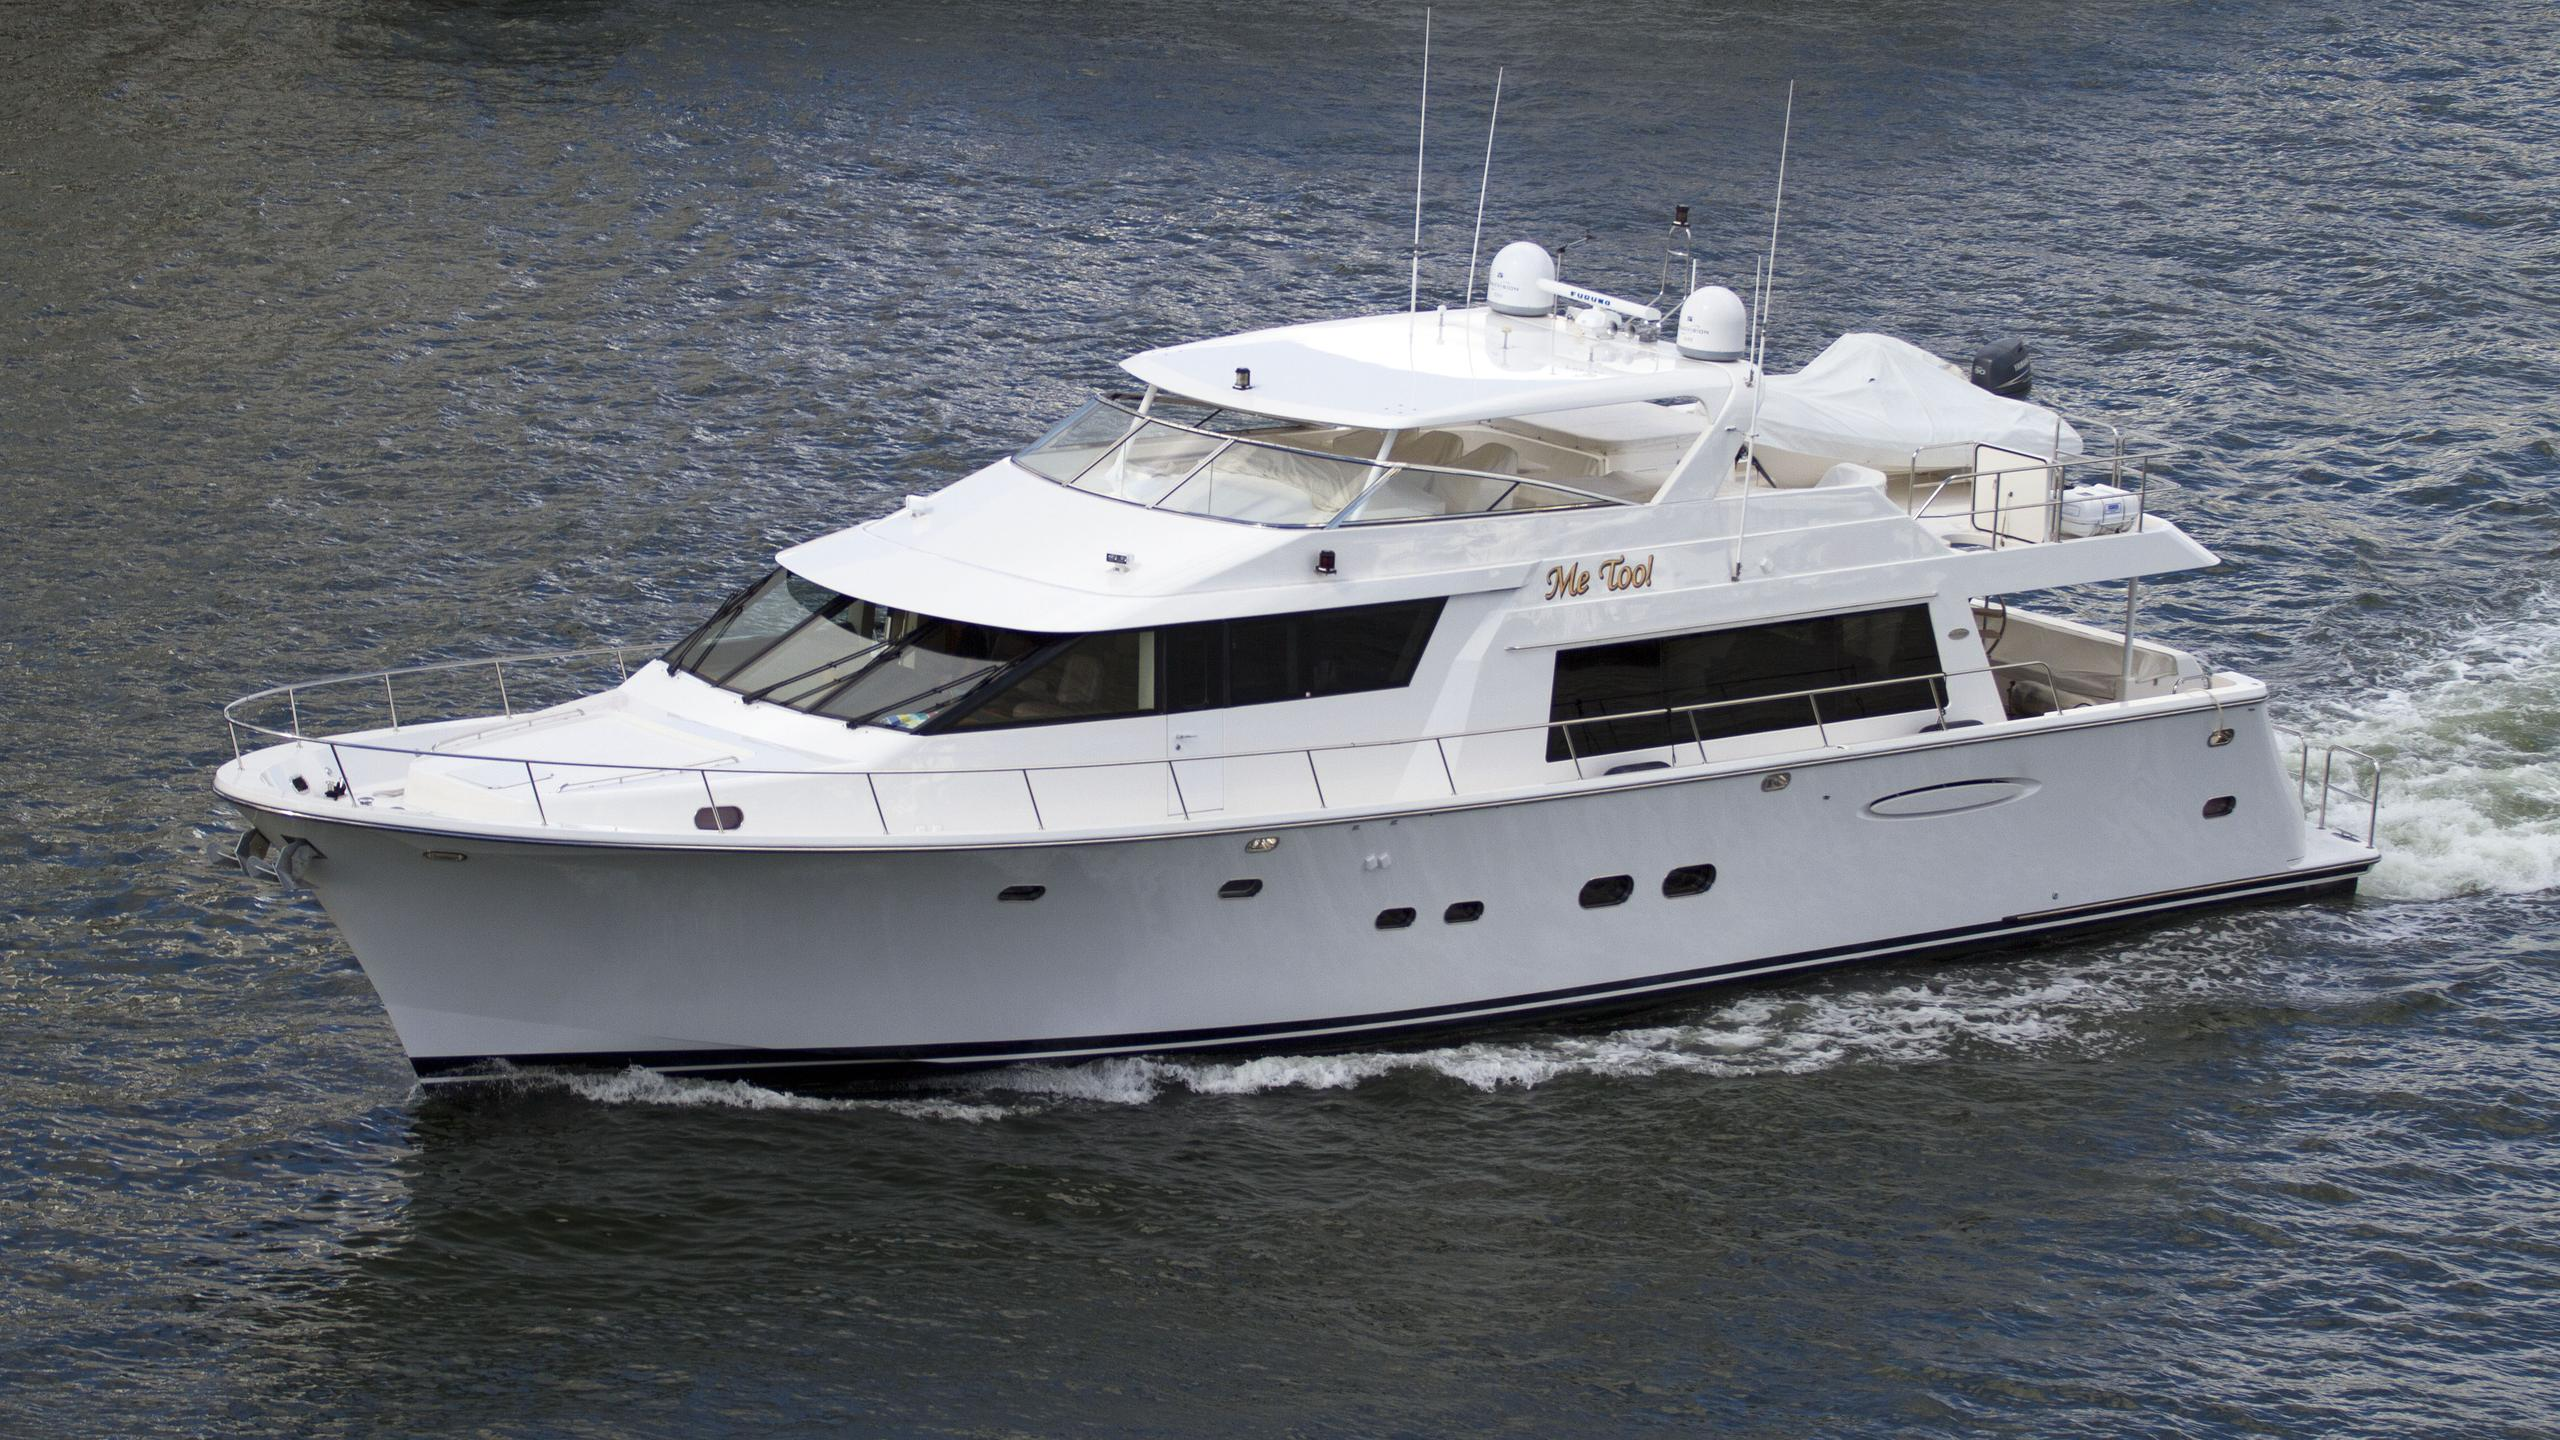 pacific-mariner-85-foxy-lady-me-too-2007-motor-yacht-running